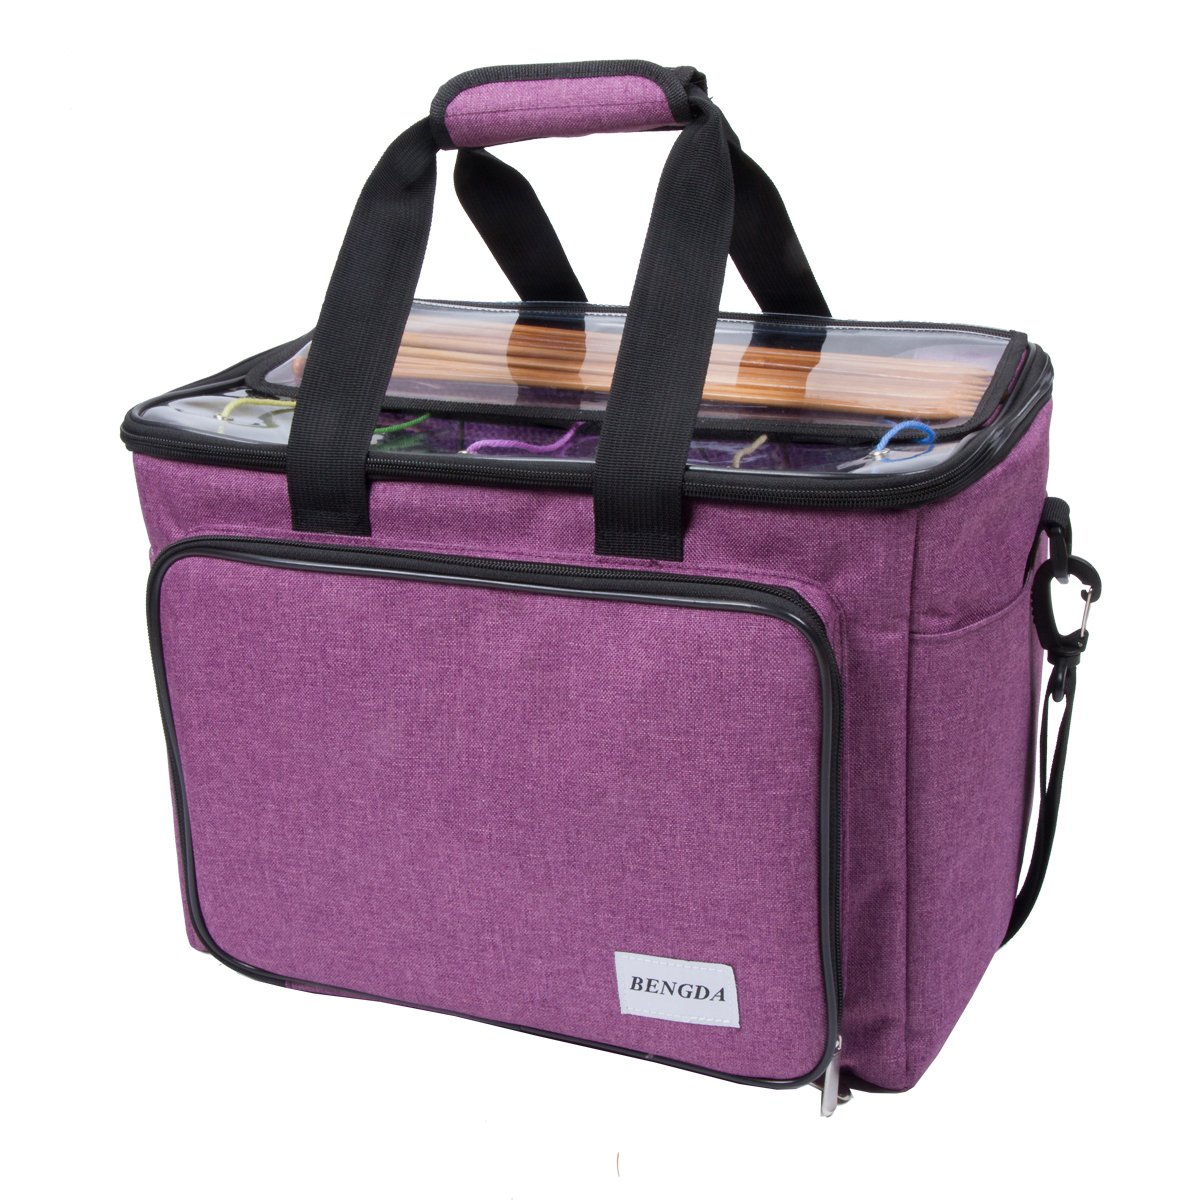 """BENGDA Knitting Bag,Premium Crochet Bags and Totes Organizer with Inner Divider for Crochet Hooks, Knitting Needles(up To 14""""), Project and Supplies,High Capacity (Stripe)"""